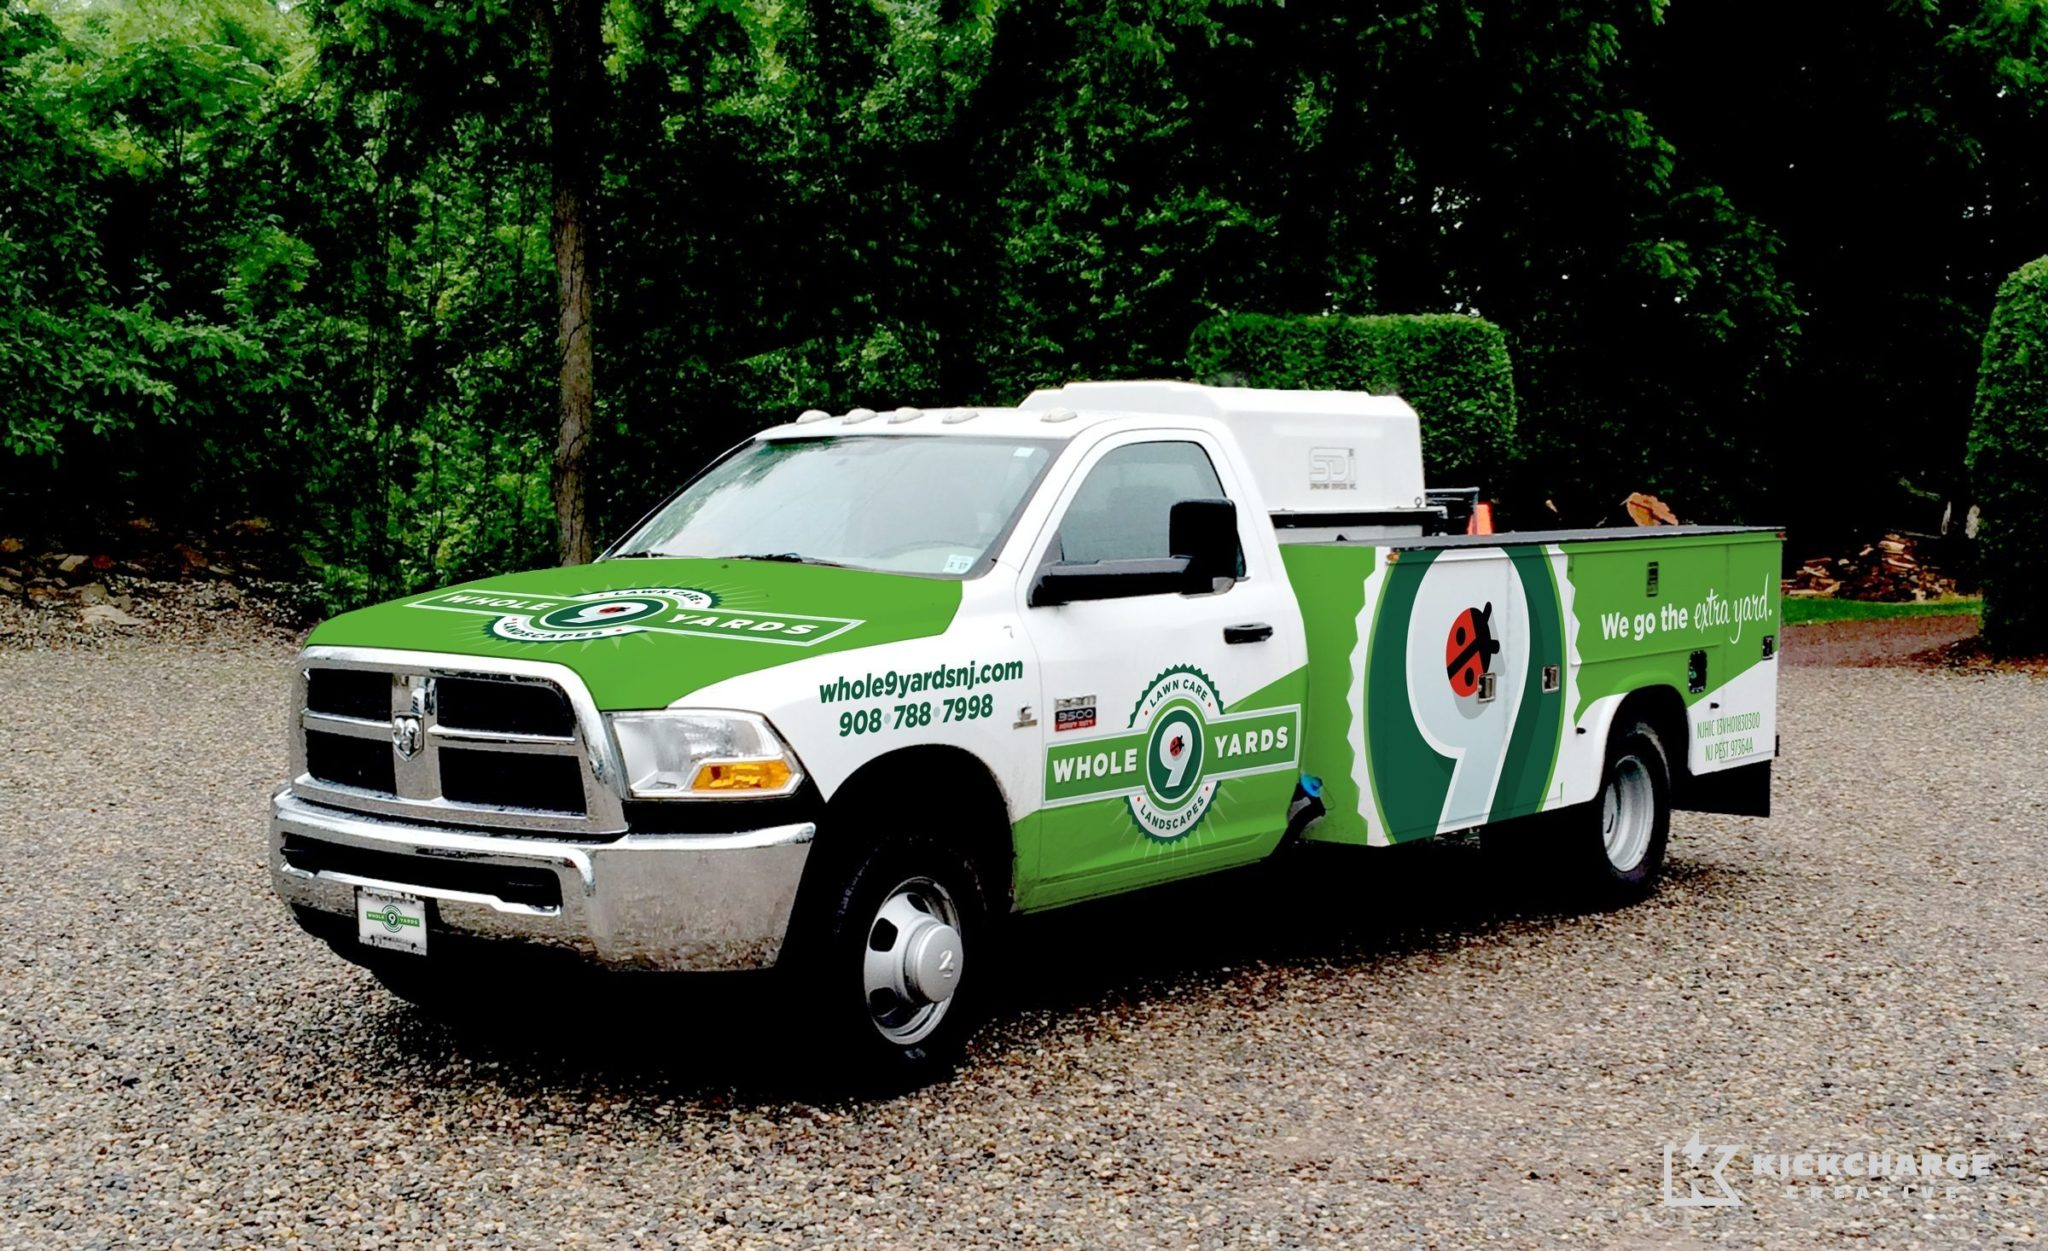 Vehicle wrap design for Whole 9 Yards Lawn Care and Landscaping serving Flemington, New Jersey.